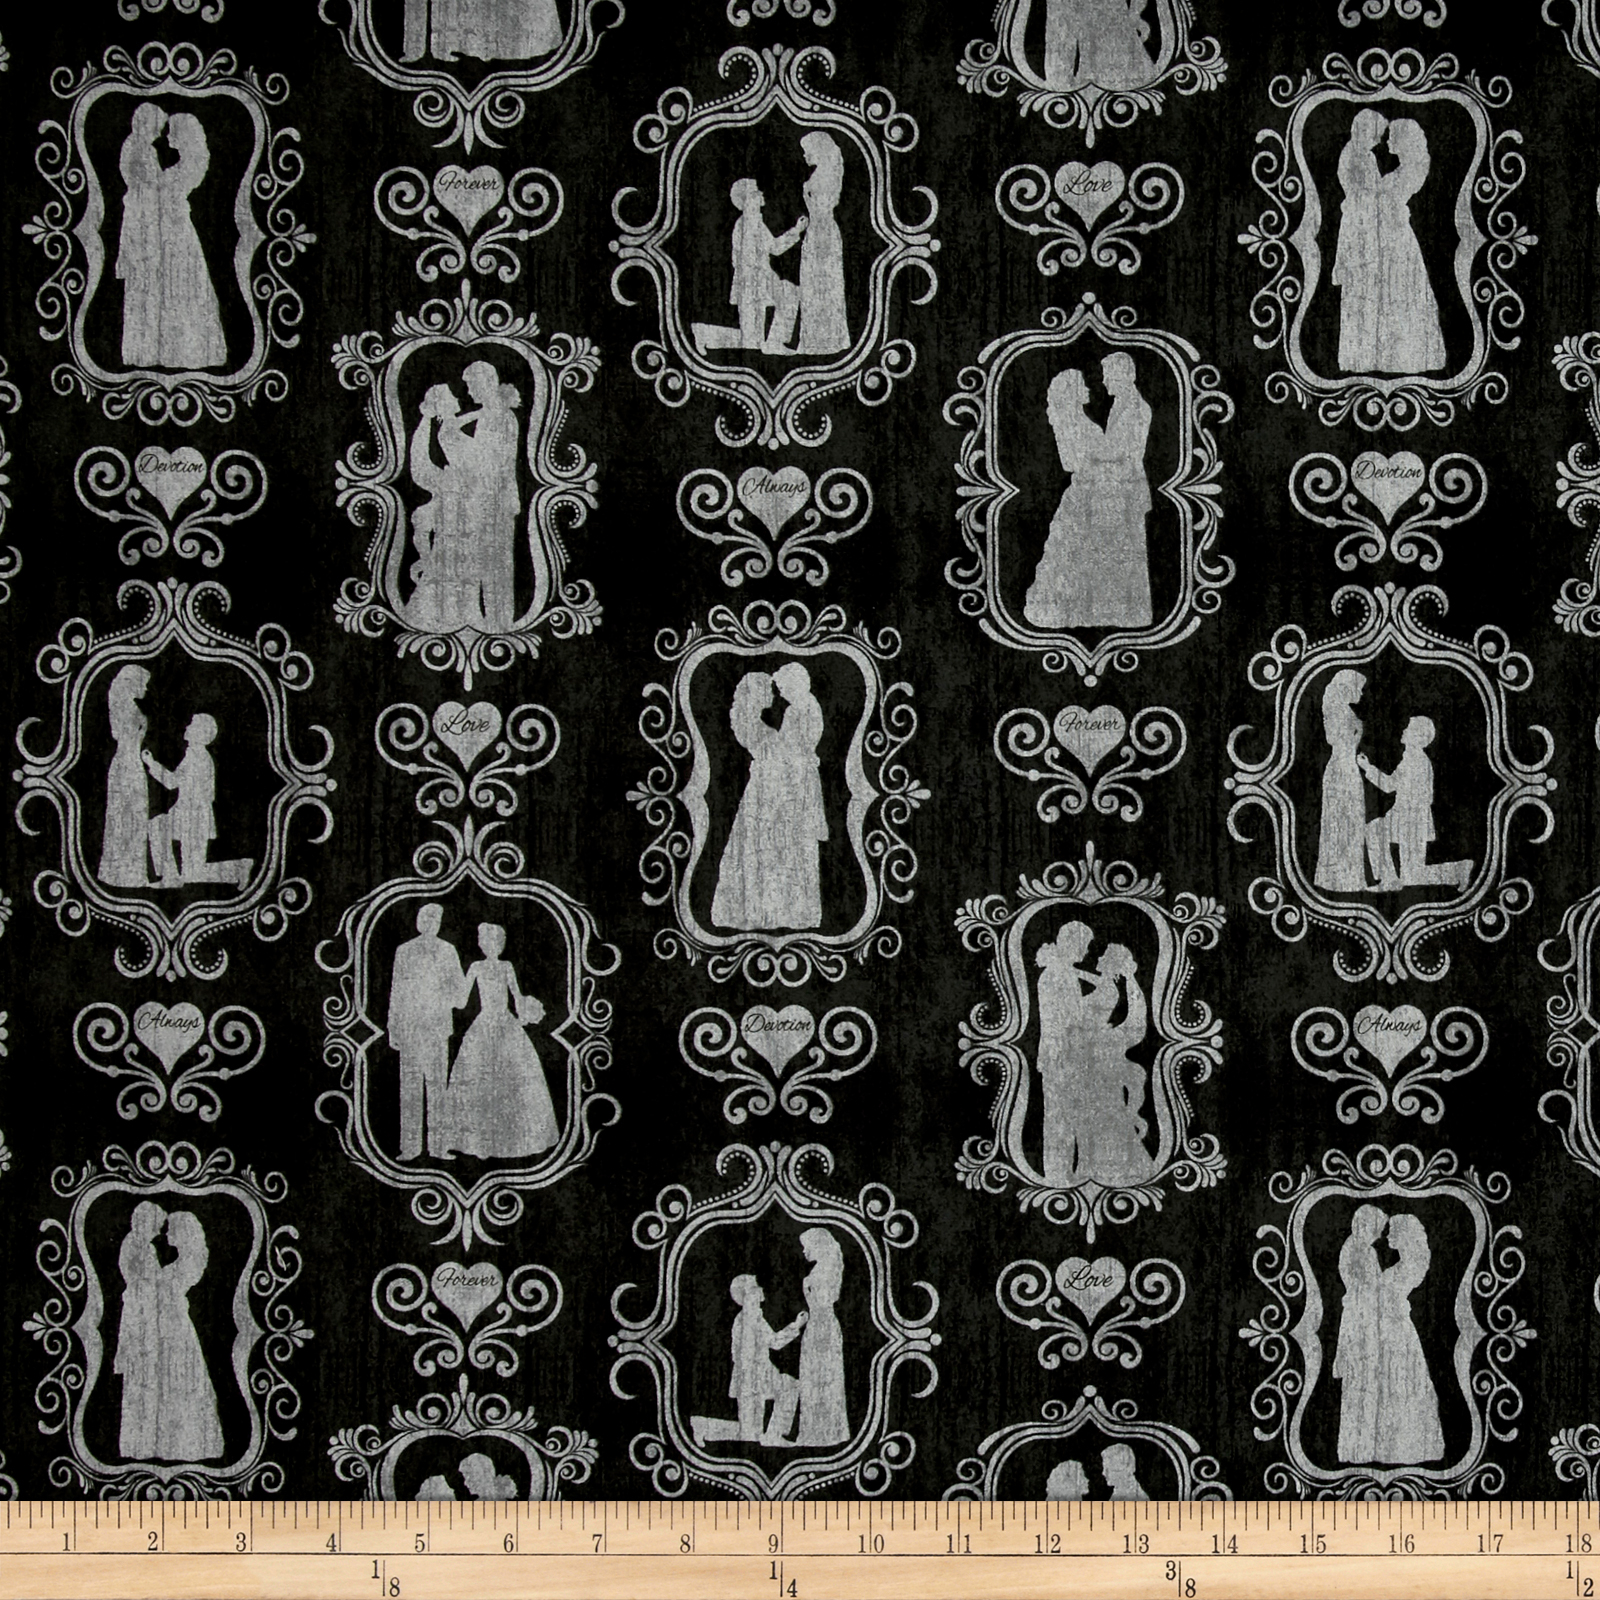 I Do Bride & Groom Silhouettes Black Fabric by Quilting Treasures in USA